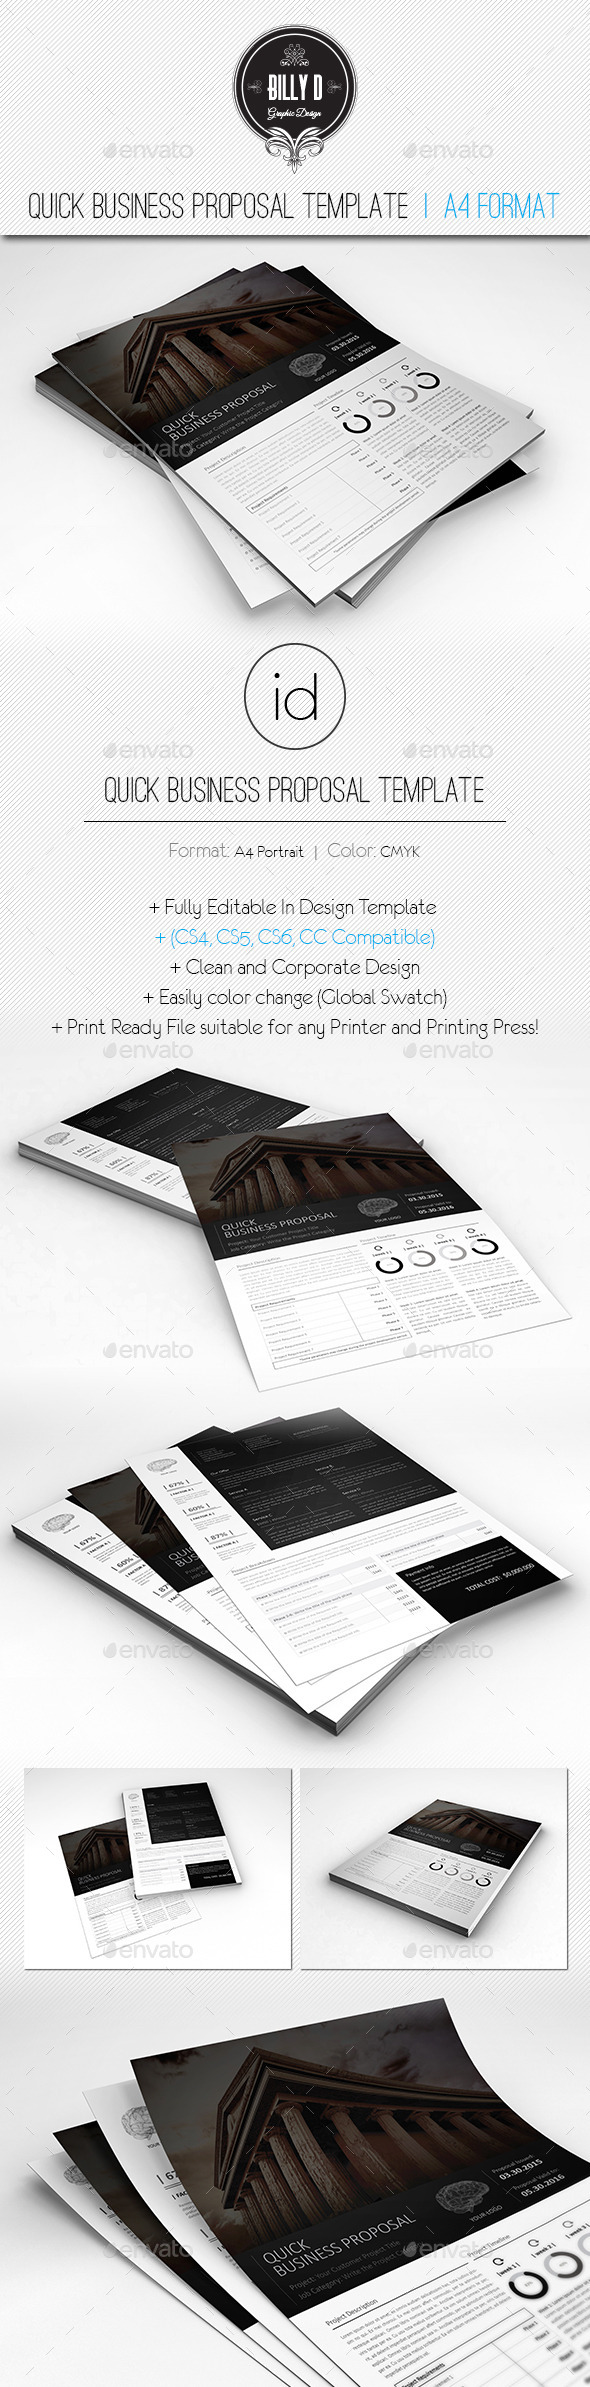 GraphicRiver Quick Business Proposal Template 10131211